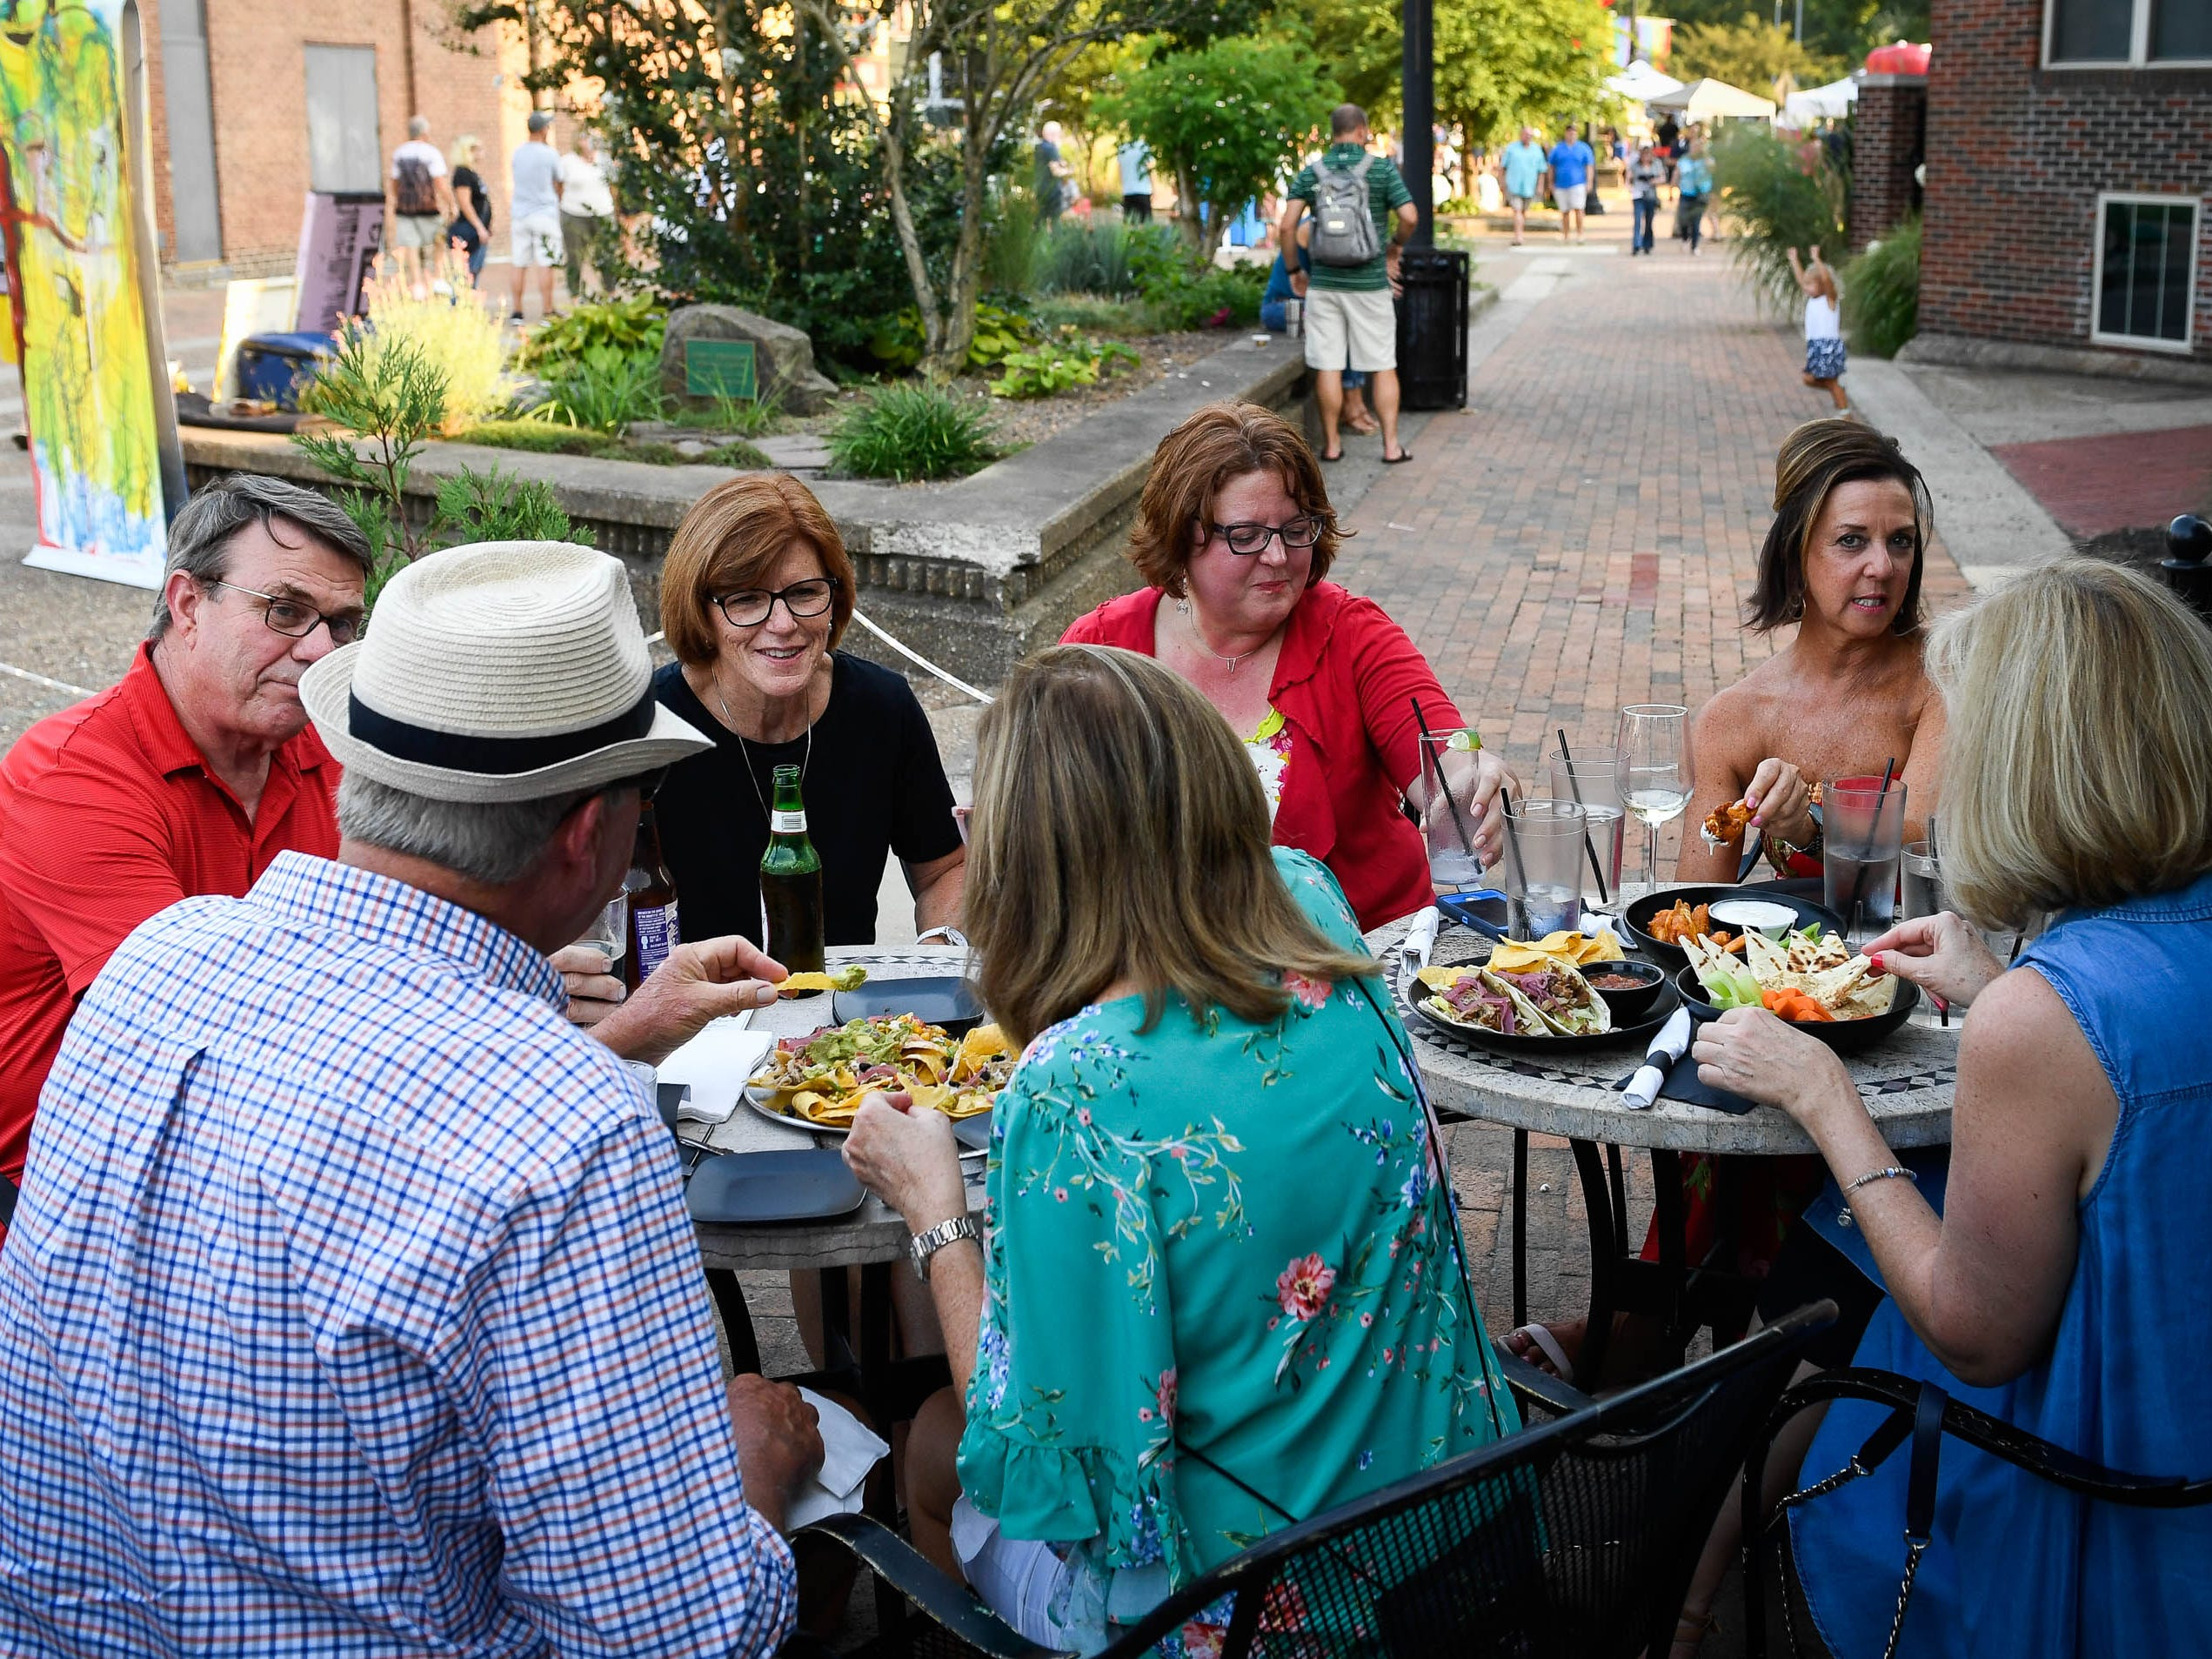 Outdoor dinning at the Bokeh Lounge during the Haynie's Corner First Friday event in the downtown Arts District Friday, August 3, 2018.